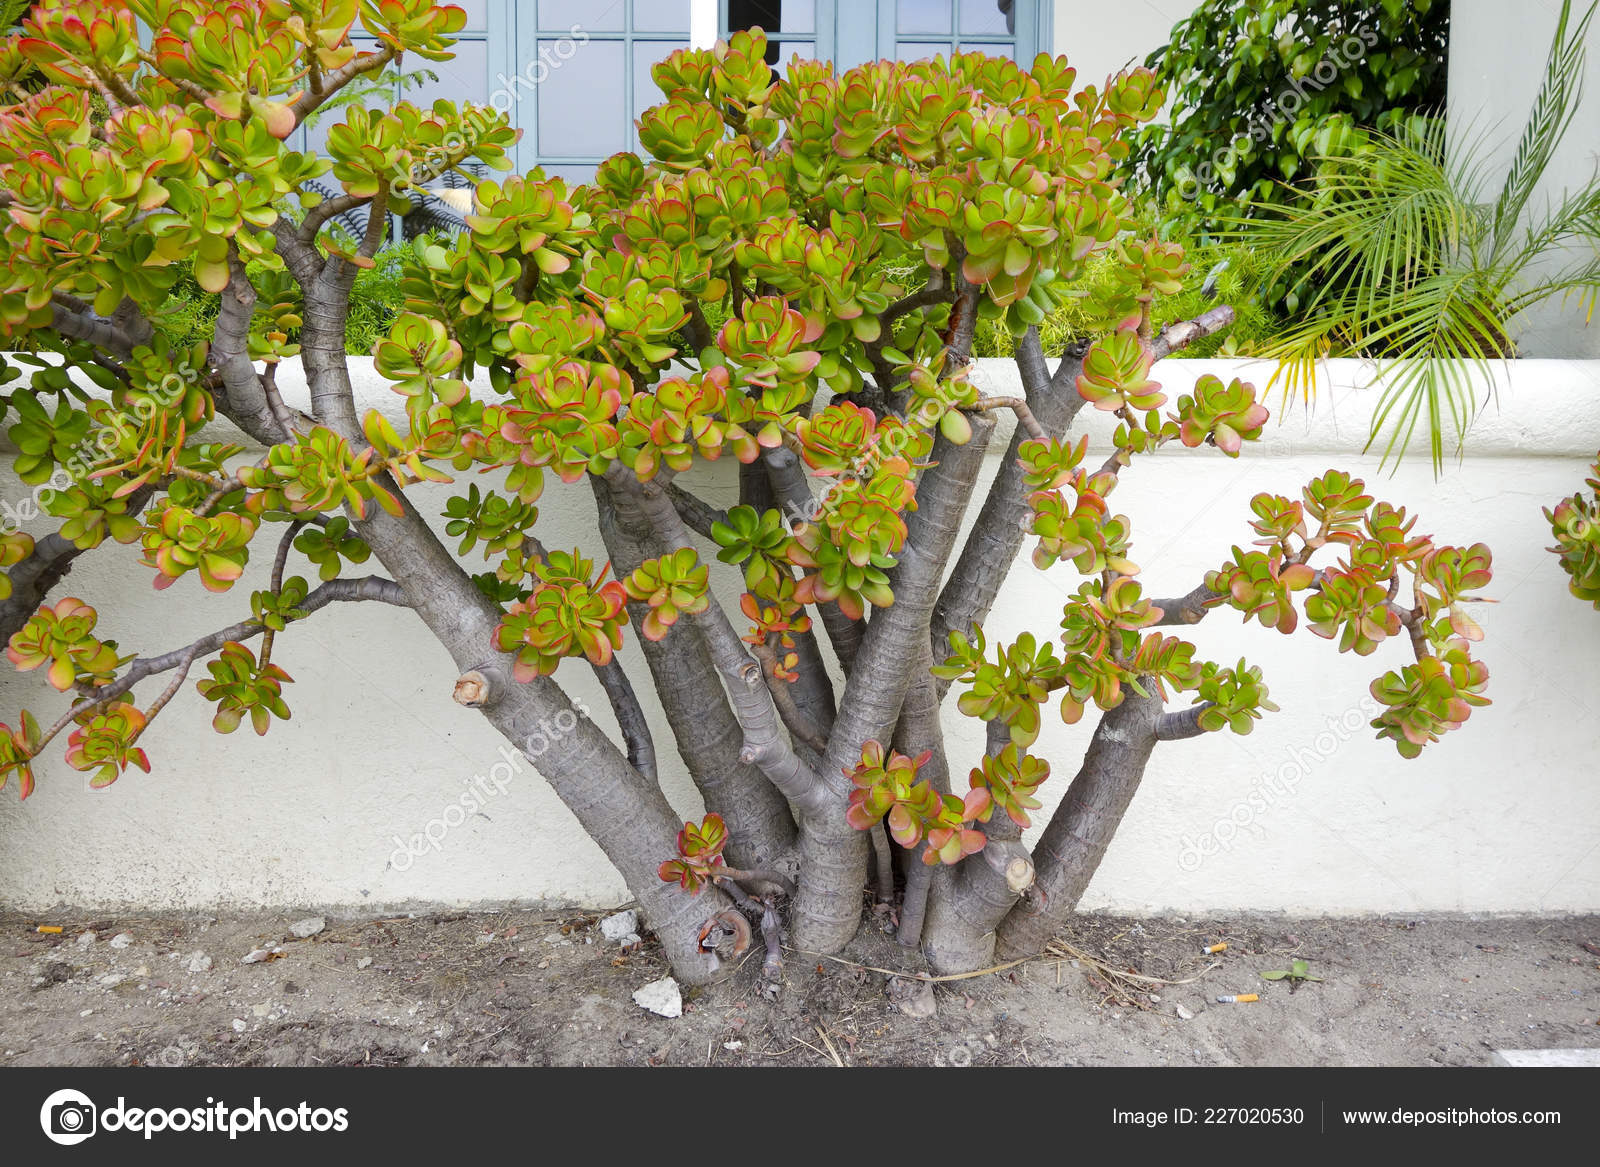 Portulacaria Afra Plant Popular Succulent Garden Plant Often Used Bonsai Stock Photo C Foto Toch 227020530